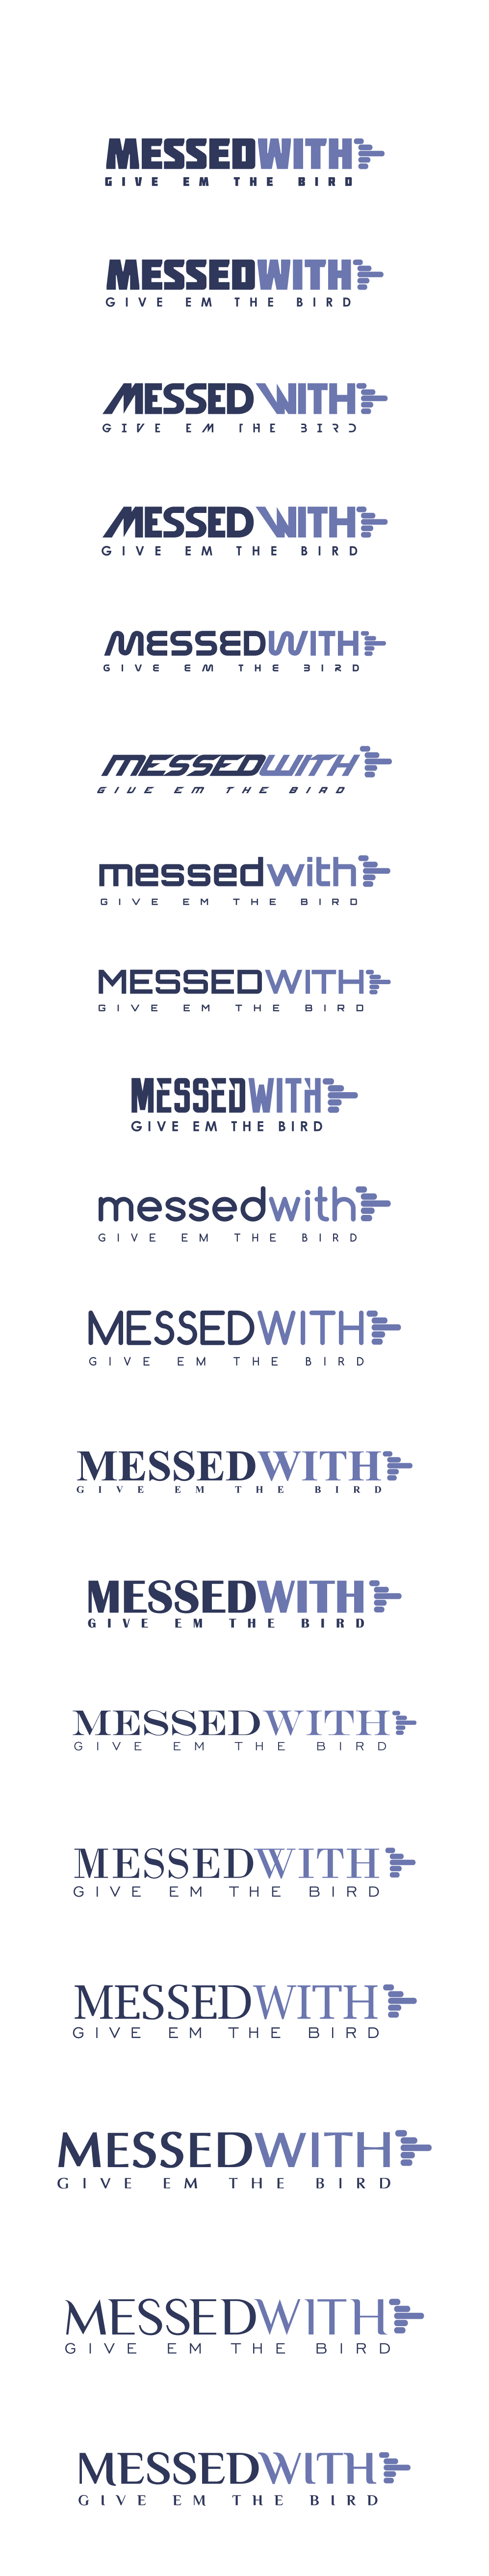 'Messed With' Logo Design